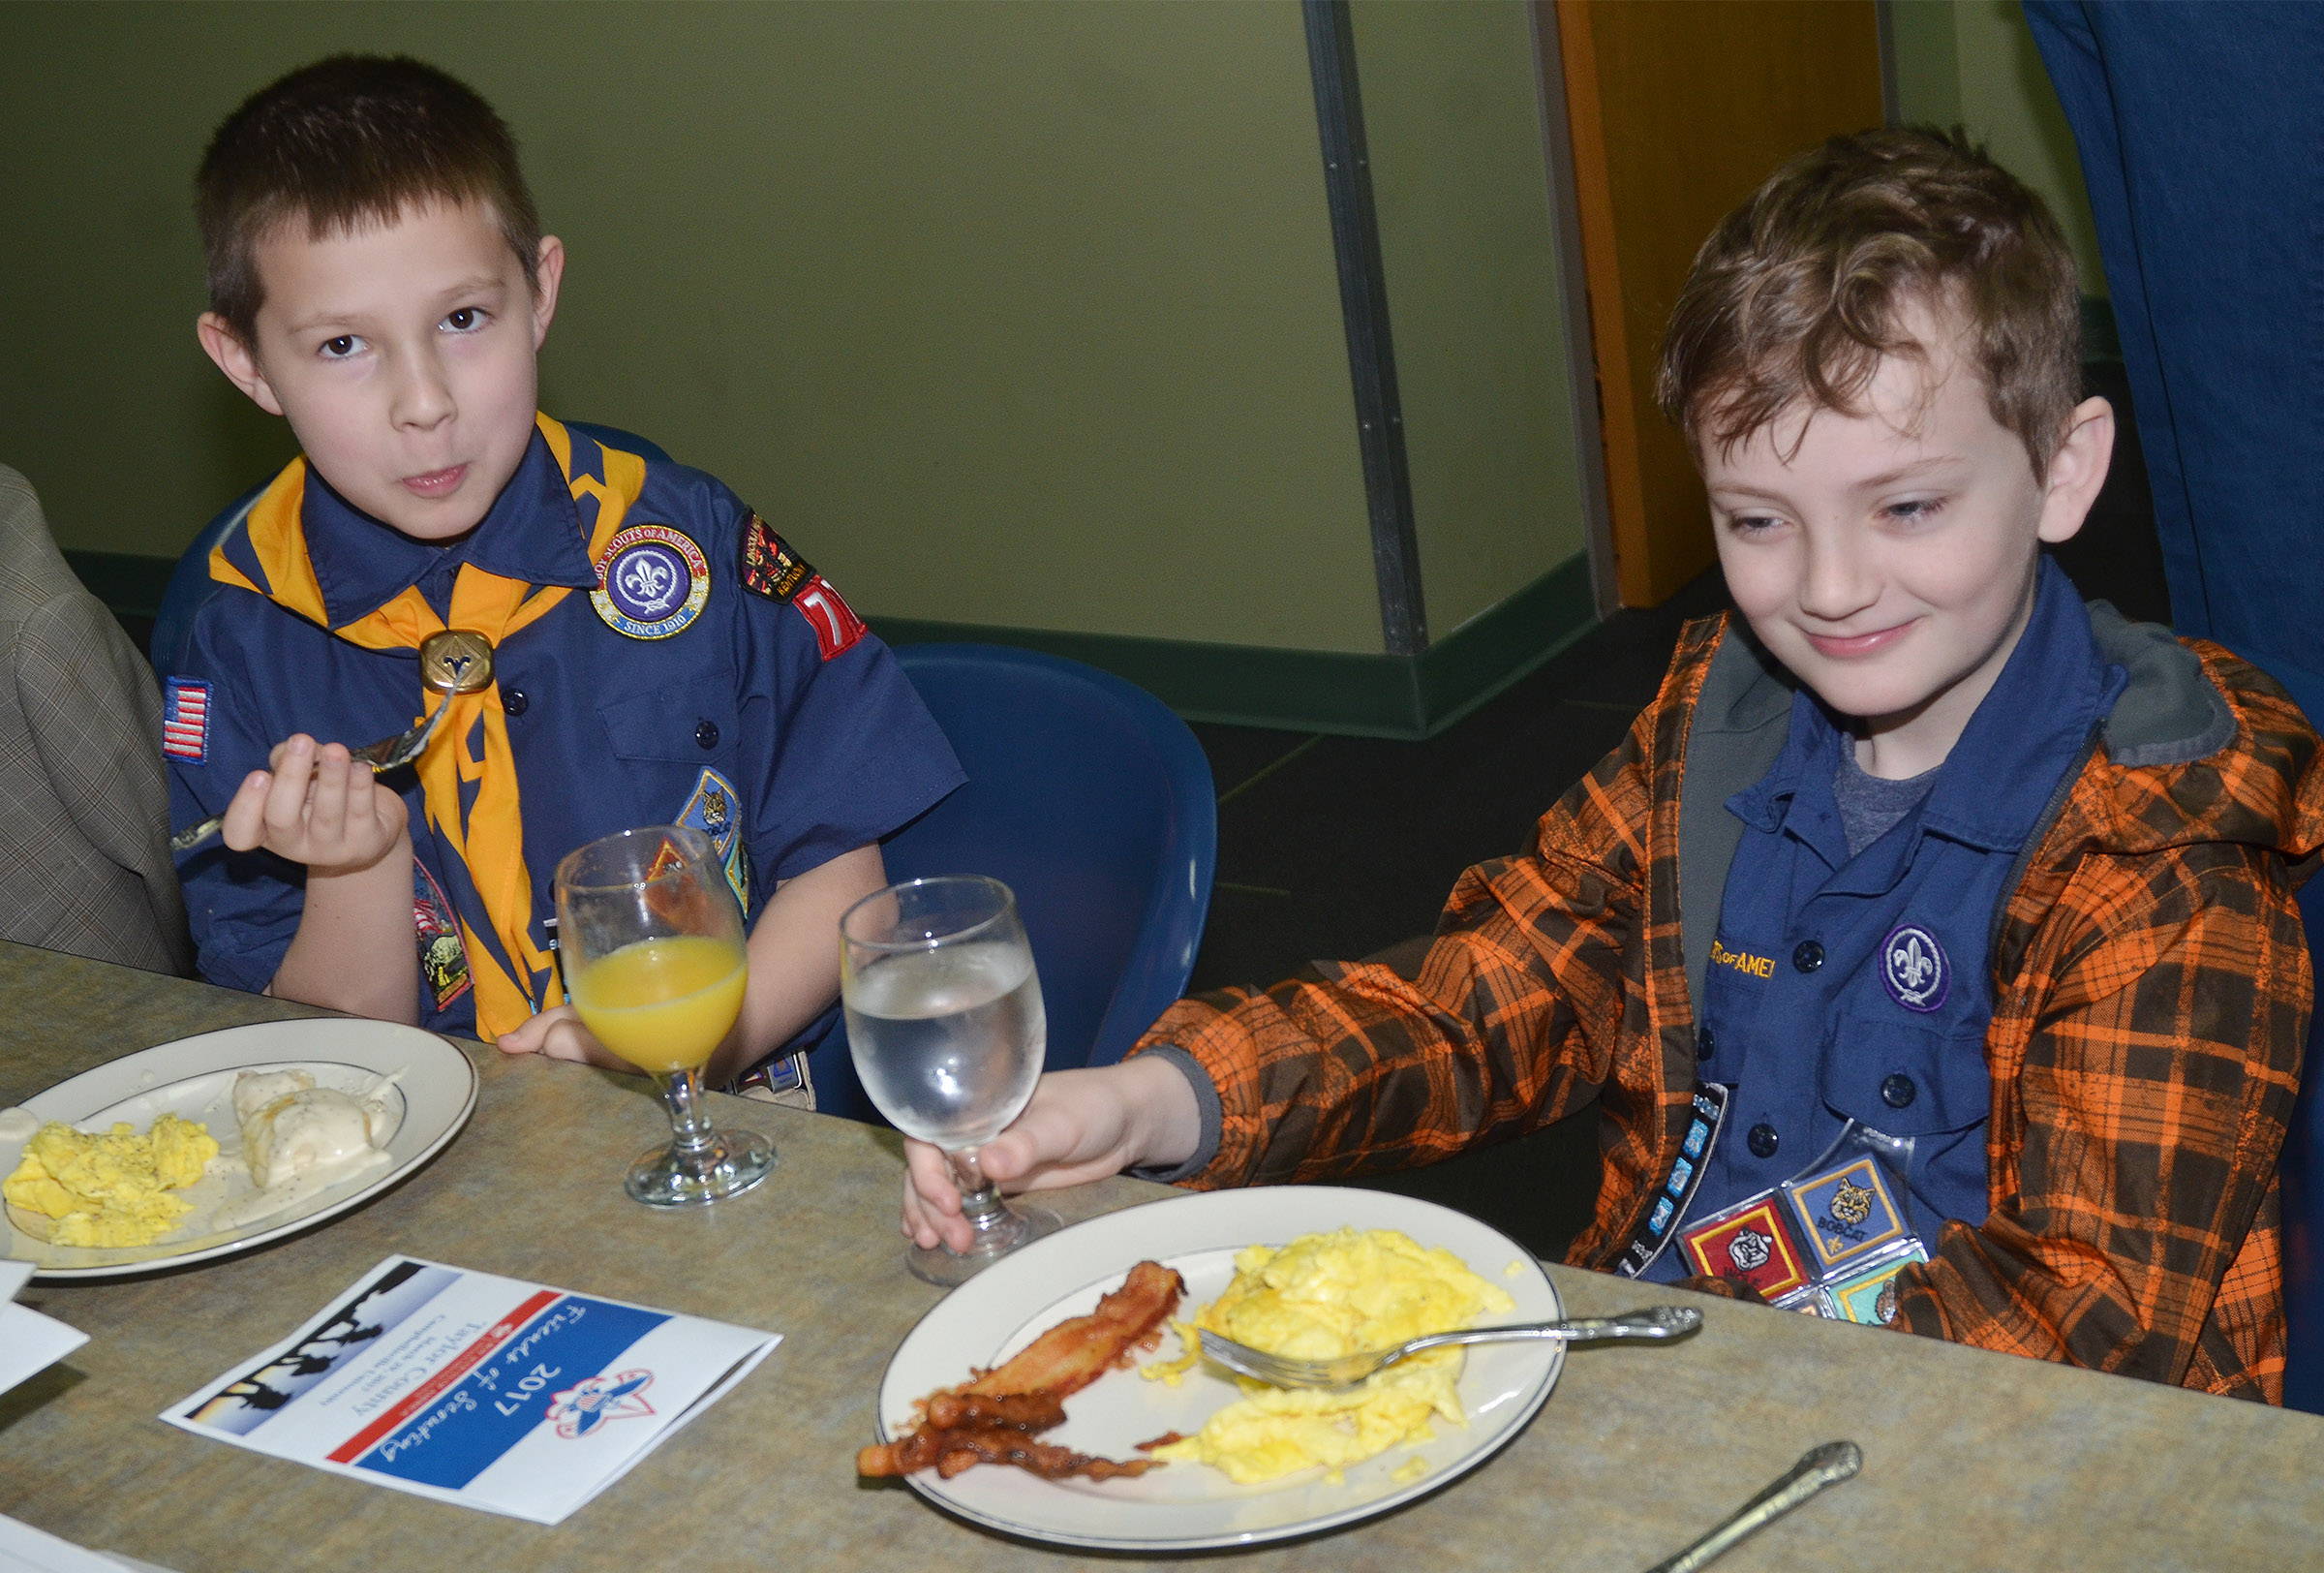 Campbellsville Elementary School third-grader Grayson Dooley, at left, and Campbellsville Middle School fourth-grader Noah Leachman enjoy breakfast.